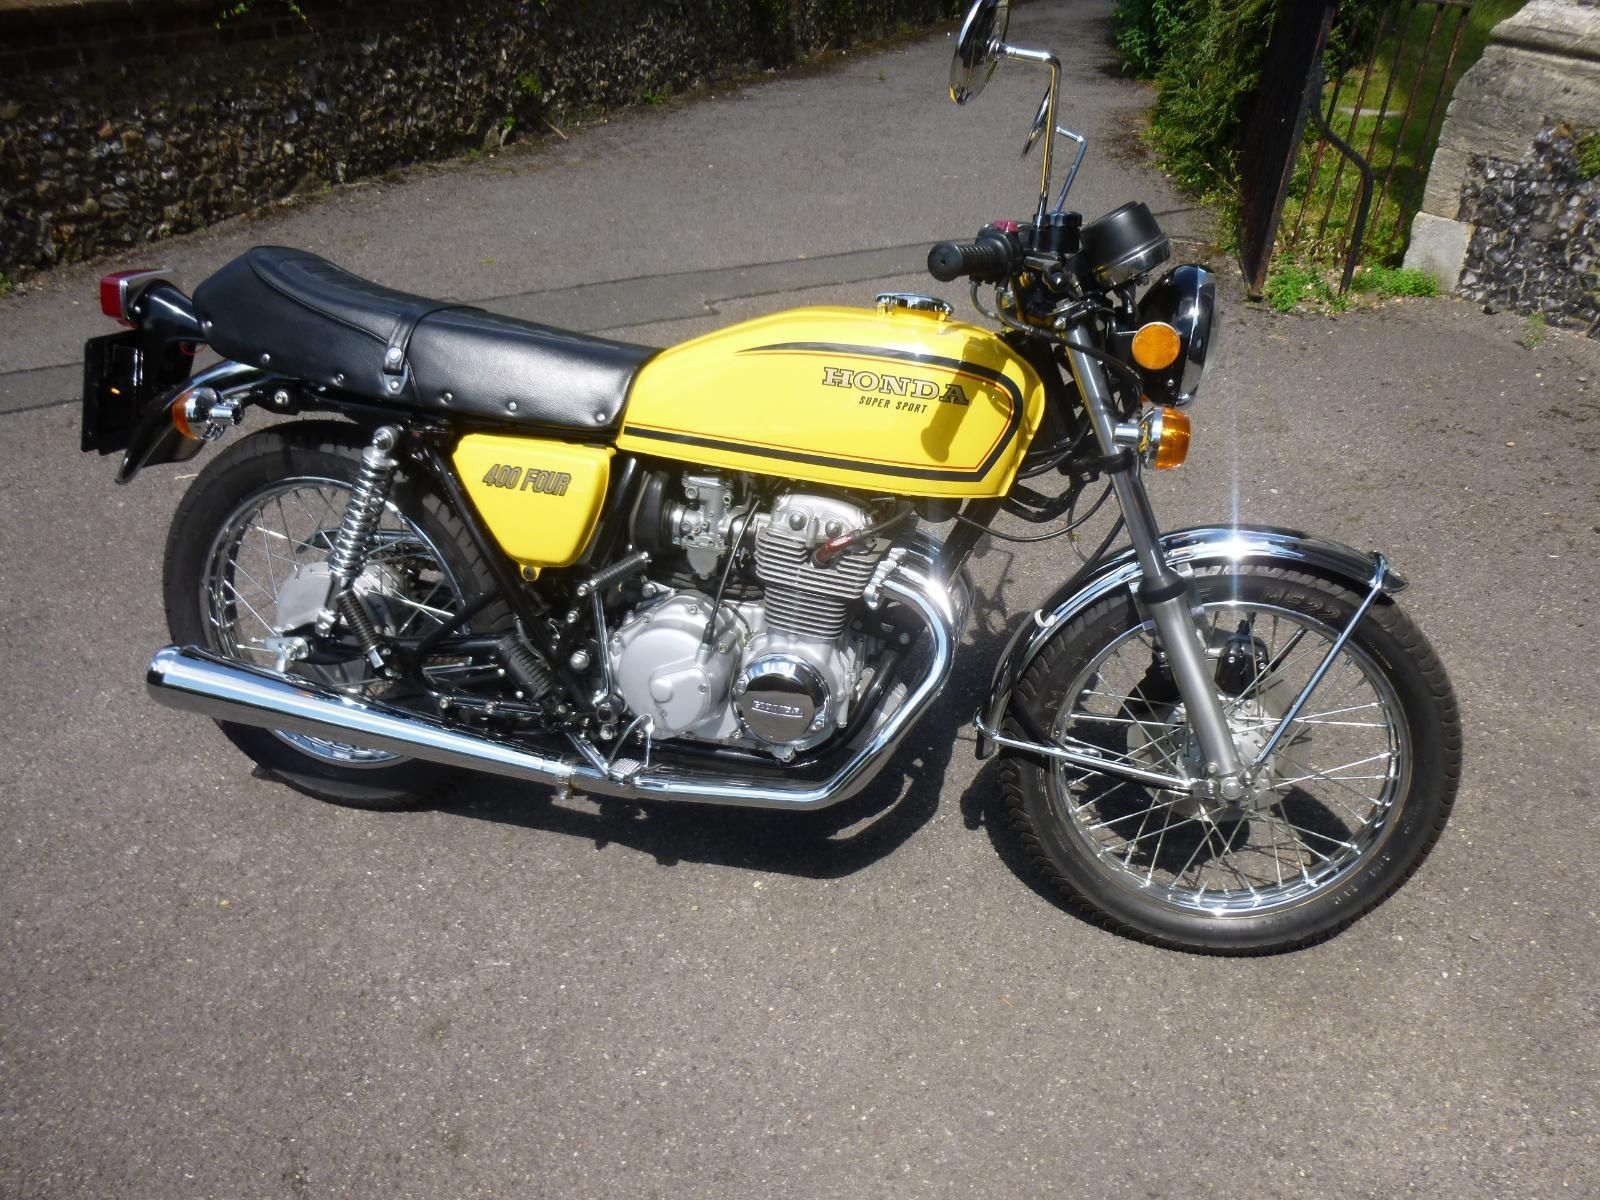 Honda CB400/4 - 1976 - Right Side View, Tank and Side Panels, Seat, Reflector and Carburettors.